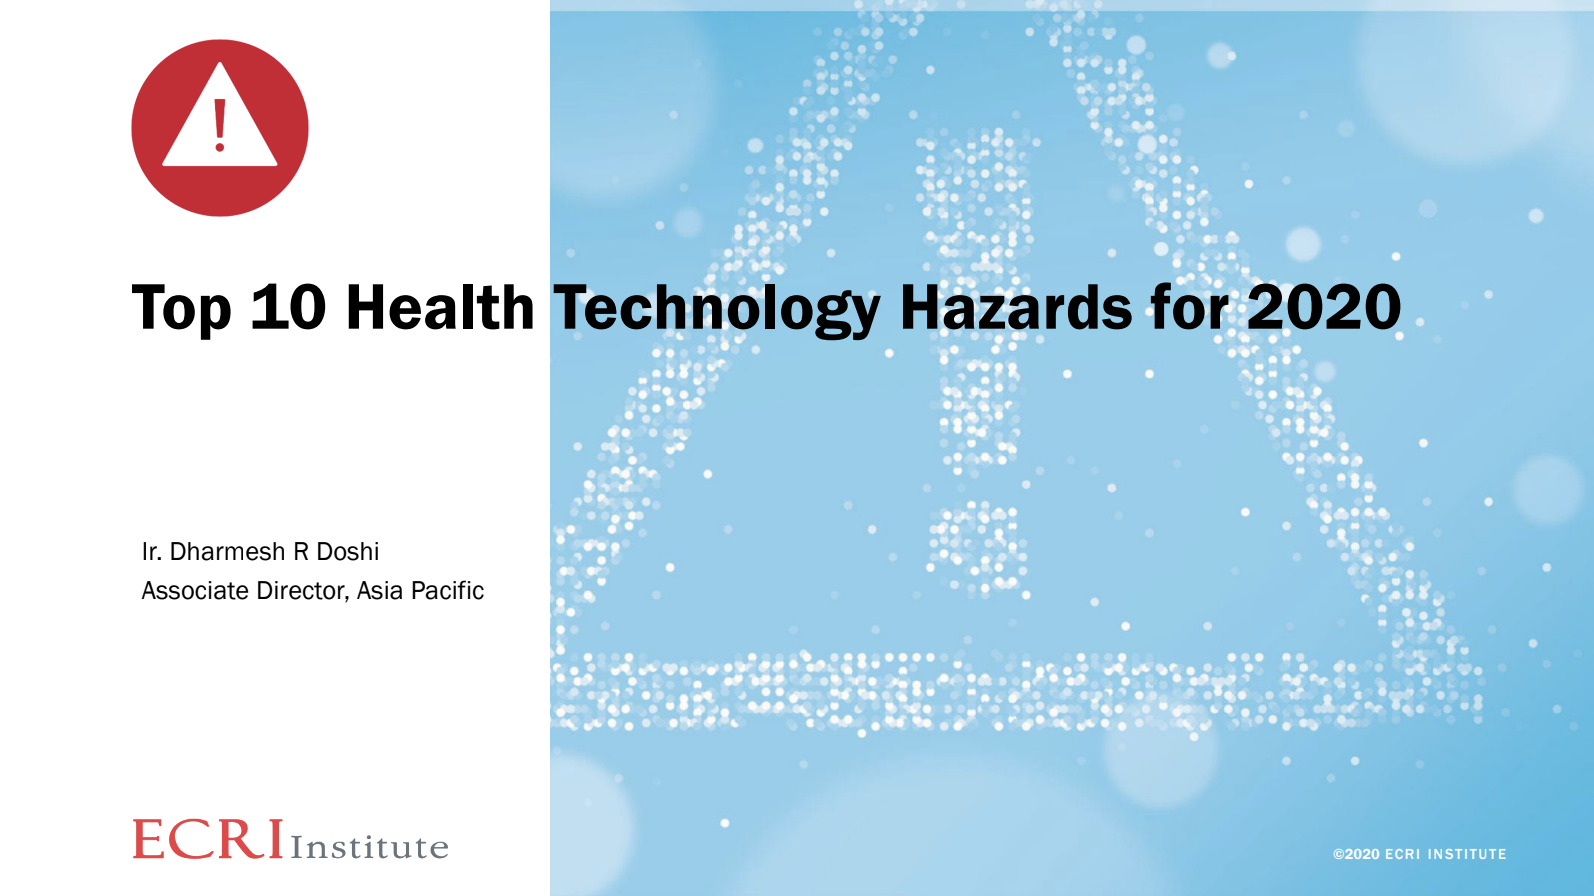 Top 10 Health Technology Hazards for 2020